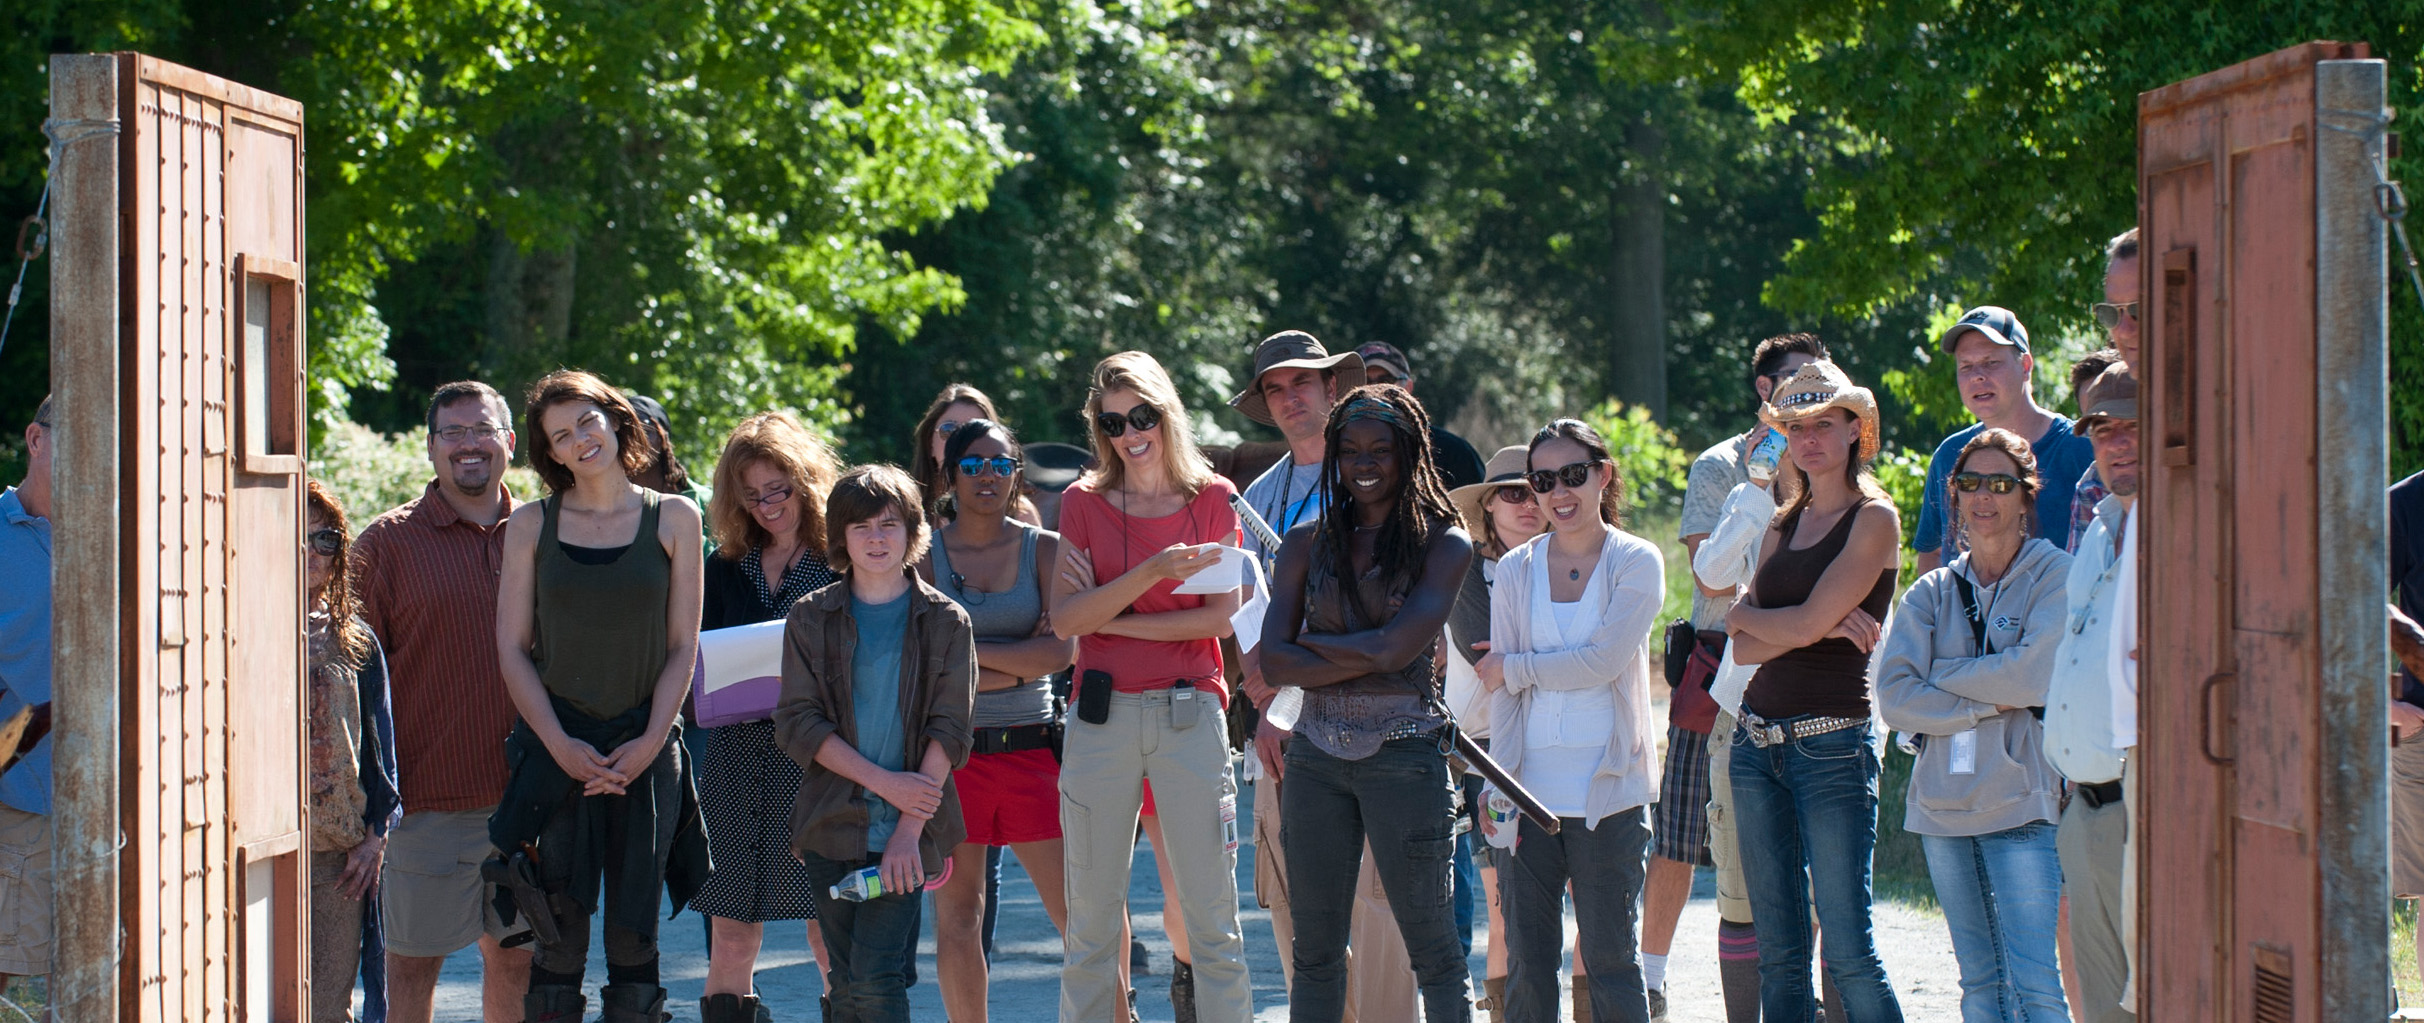 Bastidores da 4ª temporada de The Walking Dead: Episódio S04E02 -